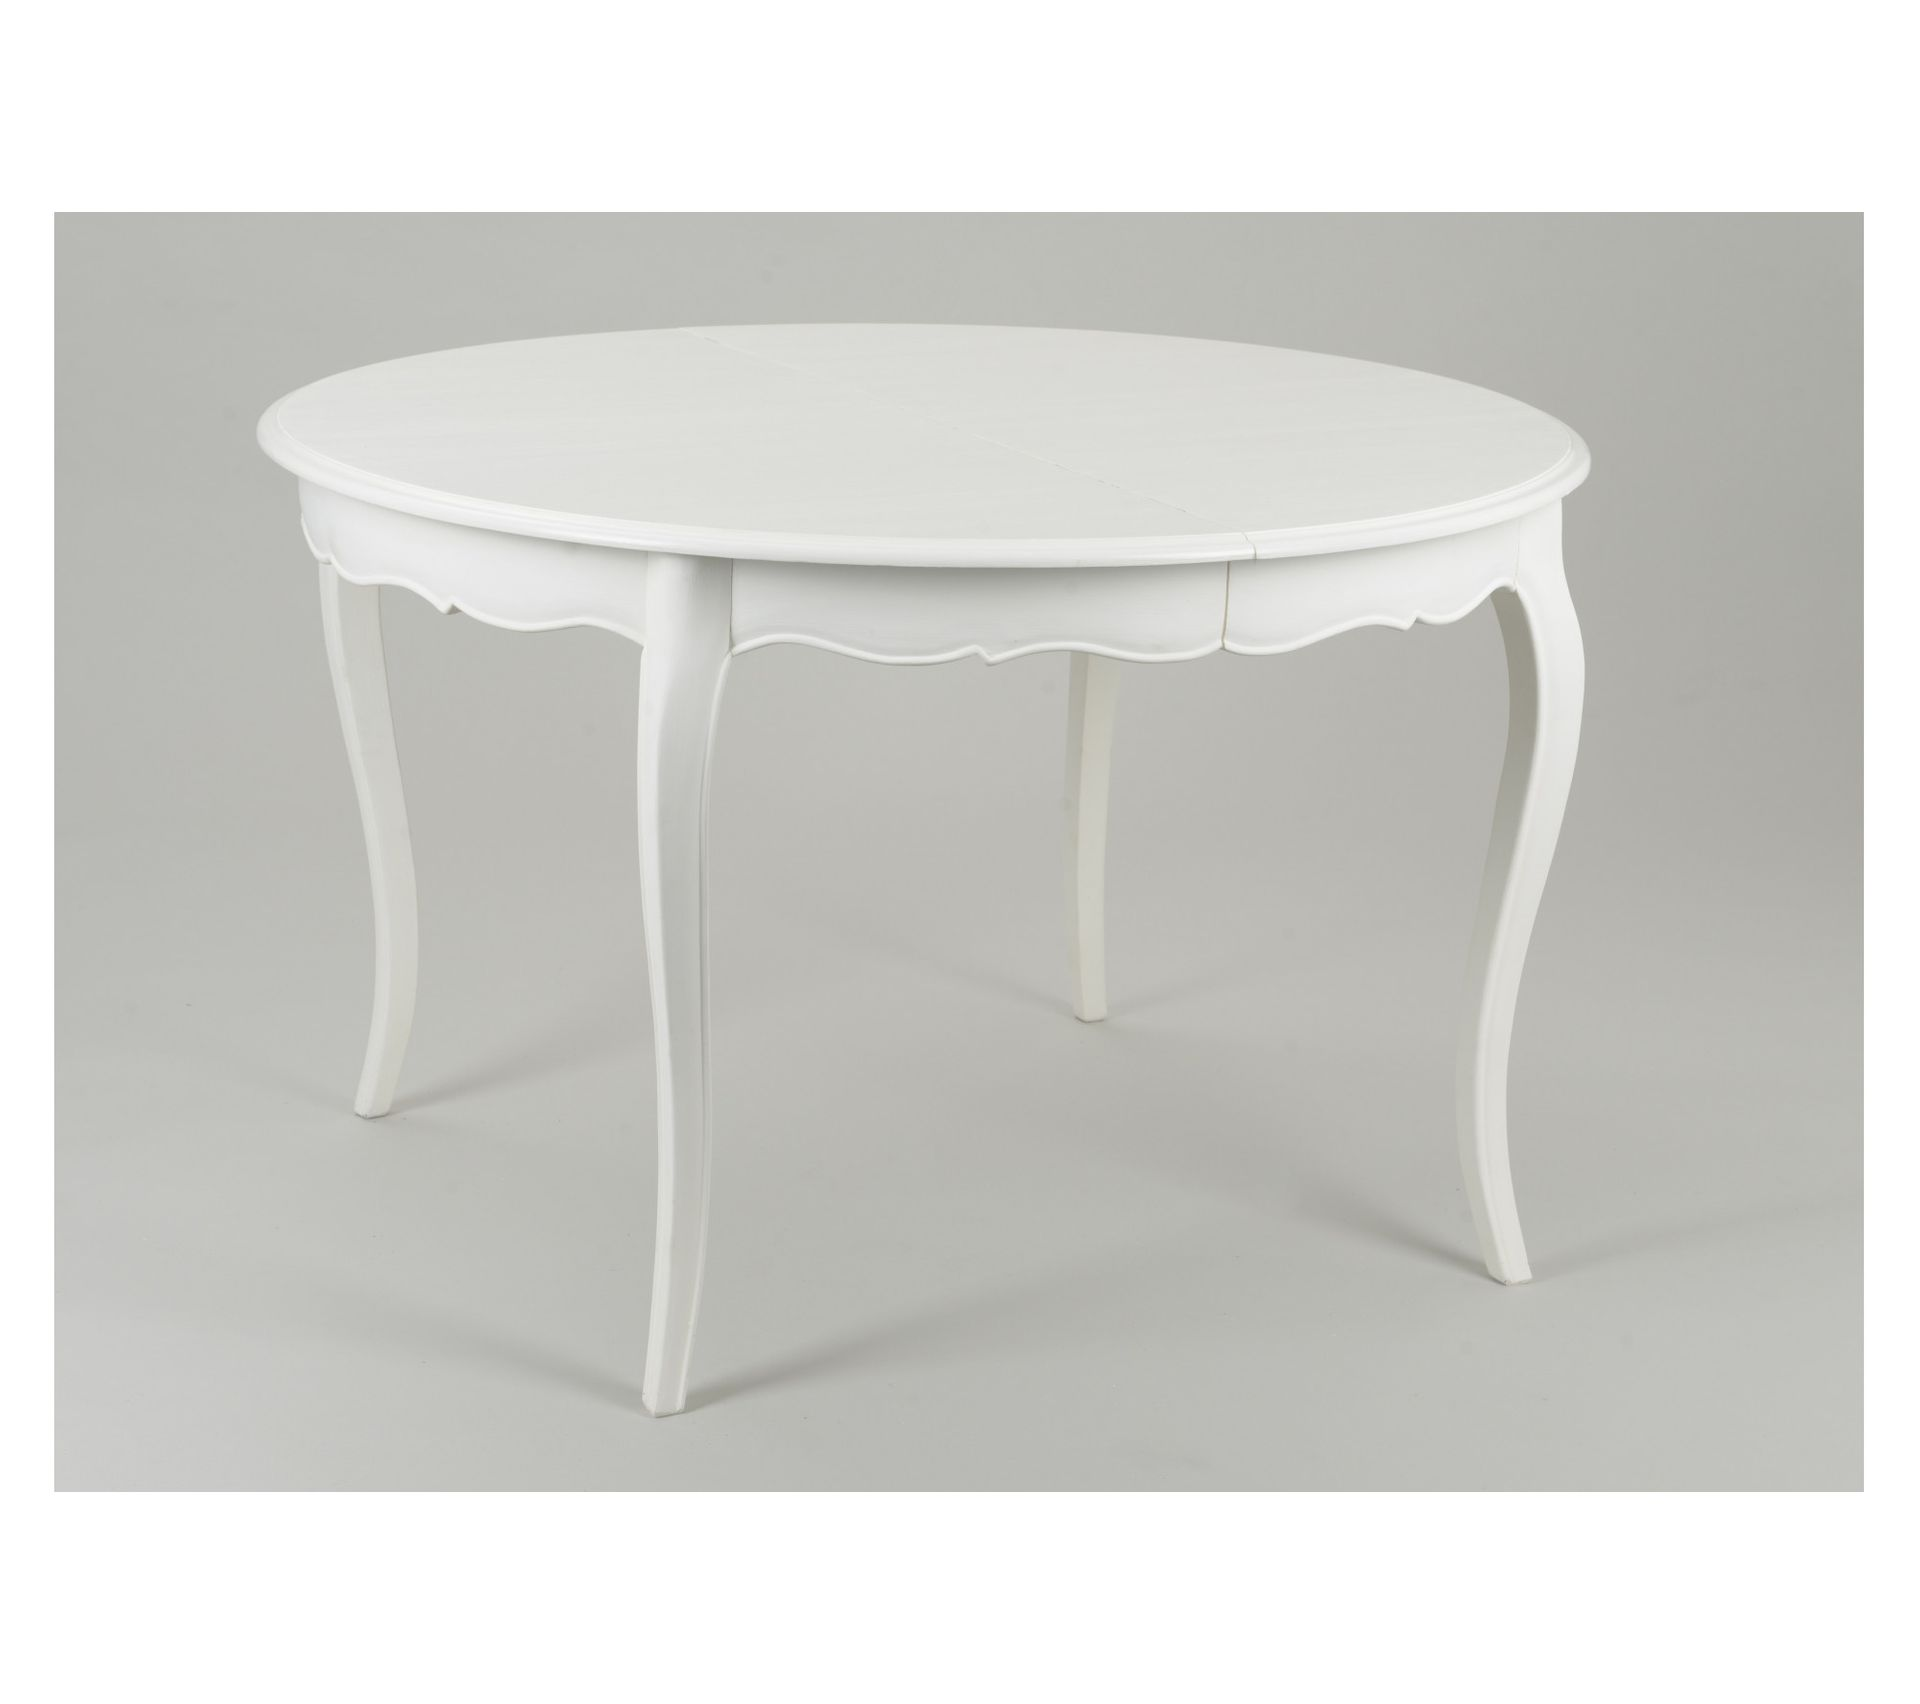 Table Ronde Extensible Murano 120 160 Cm